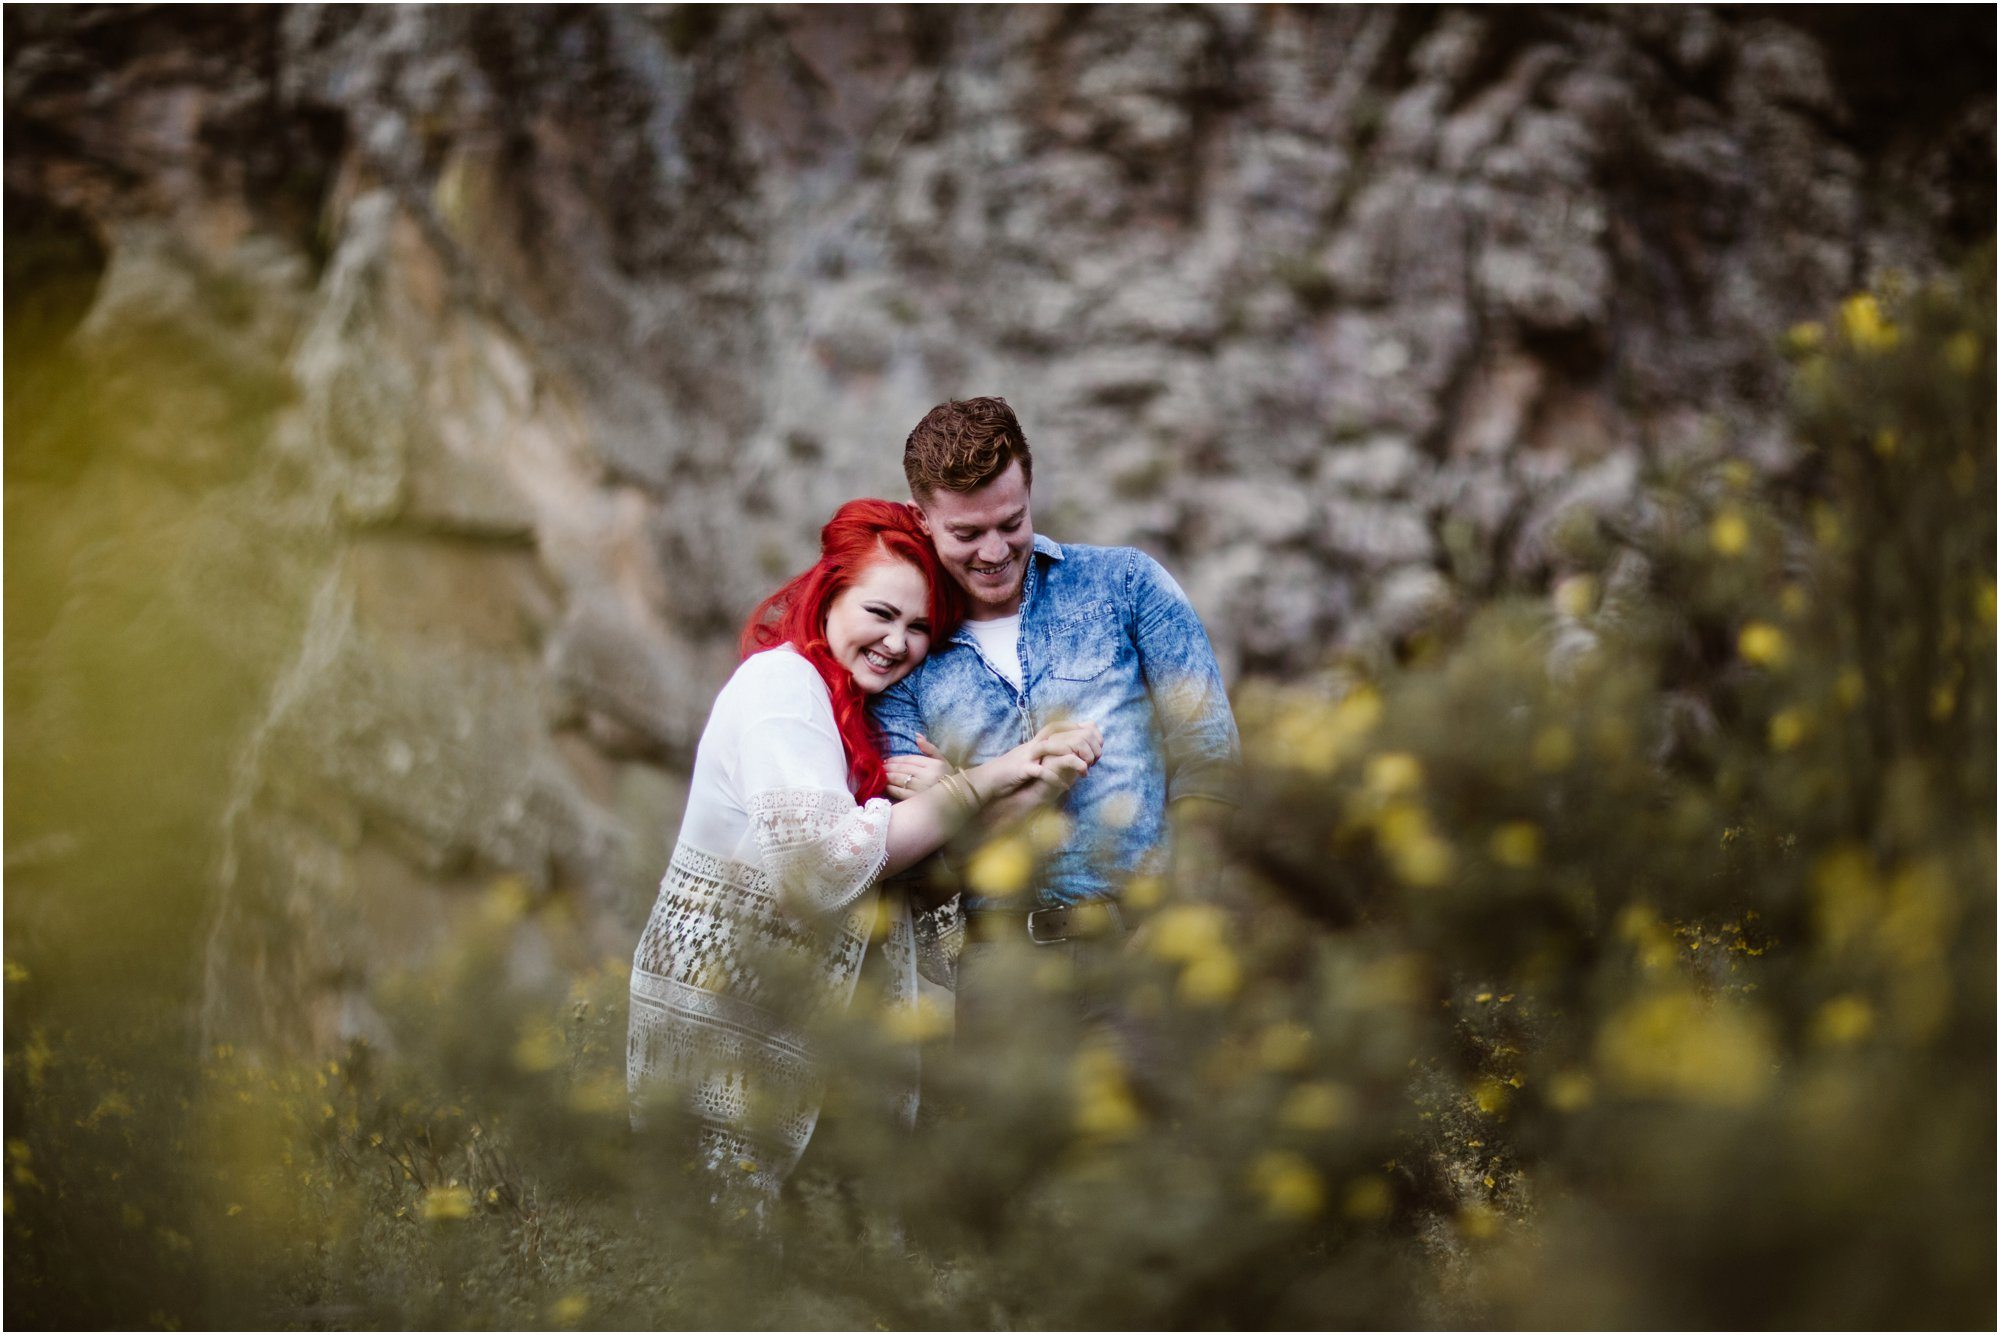 012Blue Rose Photography_ Albuquerque, Santa Fe, New Mexico wedding photographer_ engagement pictures